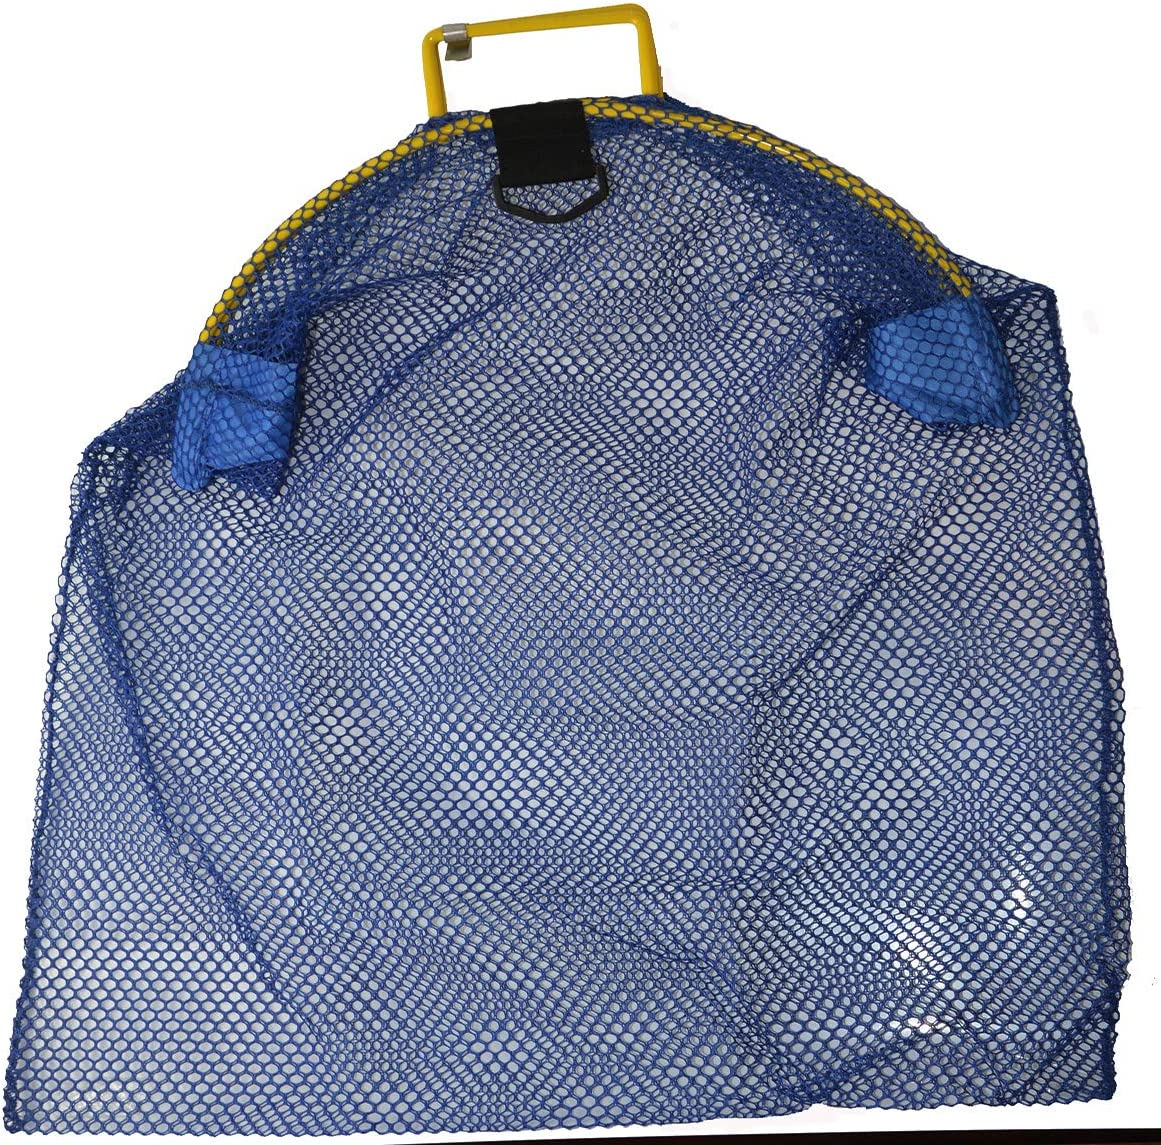 Clam Bag Lobster Bag Great Spearfishing Bag Coated Wire Handle Mesh Heavy Duty Game Bag Marine Canvas//Mesh and optionable D-Ring 24 inches by 28 inches